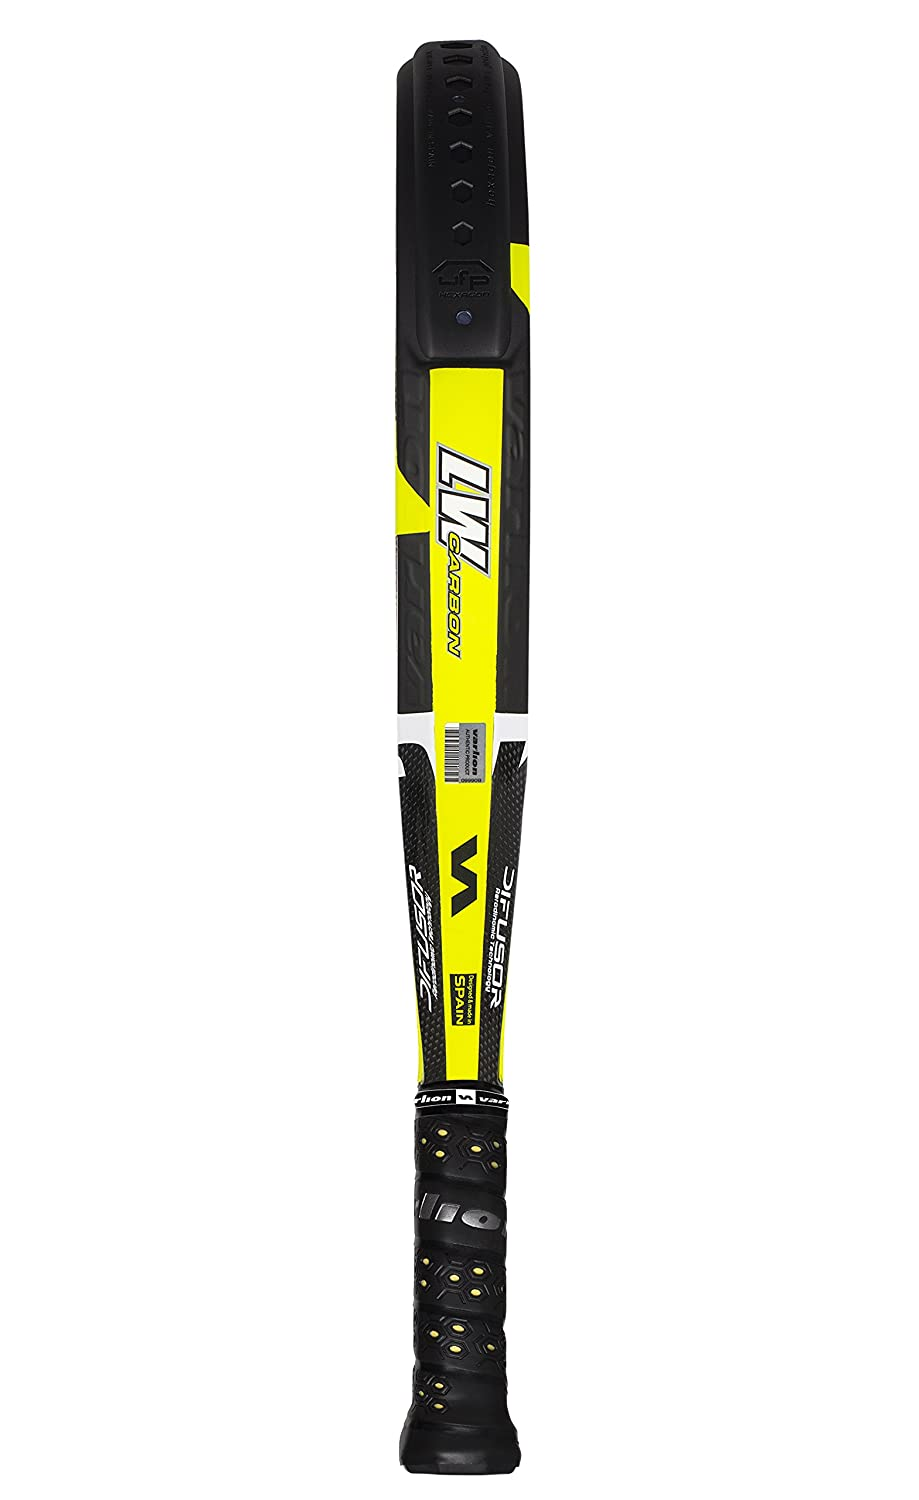 VARLION L.W. Carbon Hexagon Difusor - Pala de pádel Unisex, Color Amarillo: Amazon.es: Deportes y aire libre